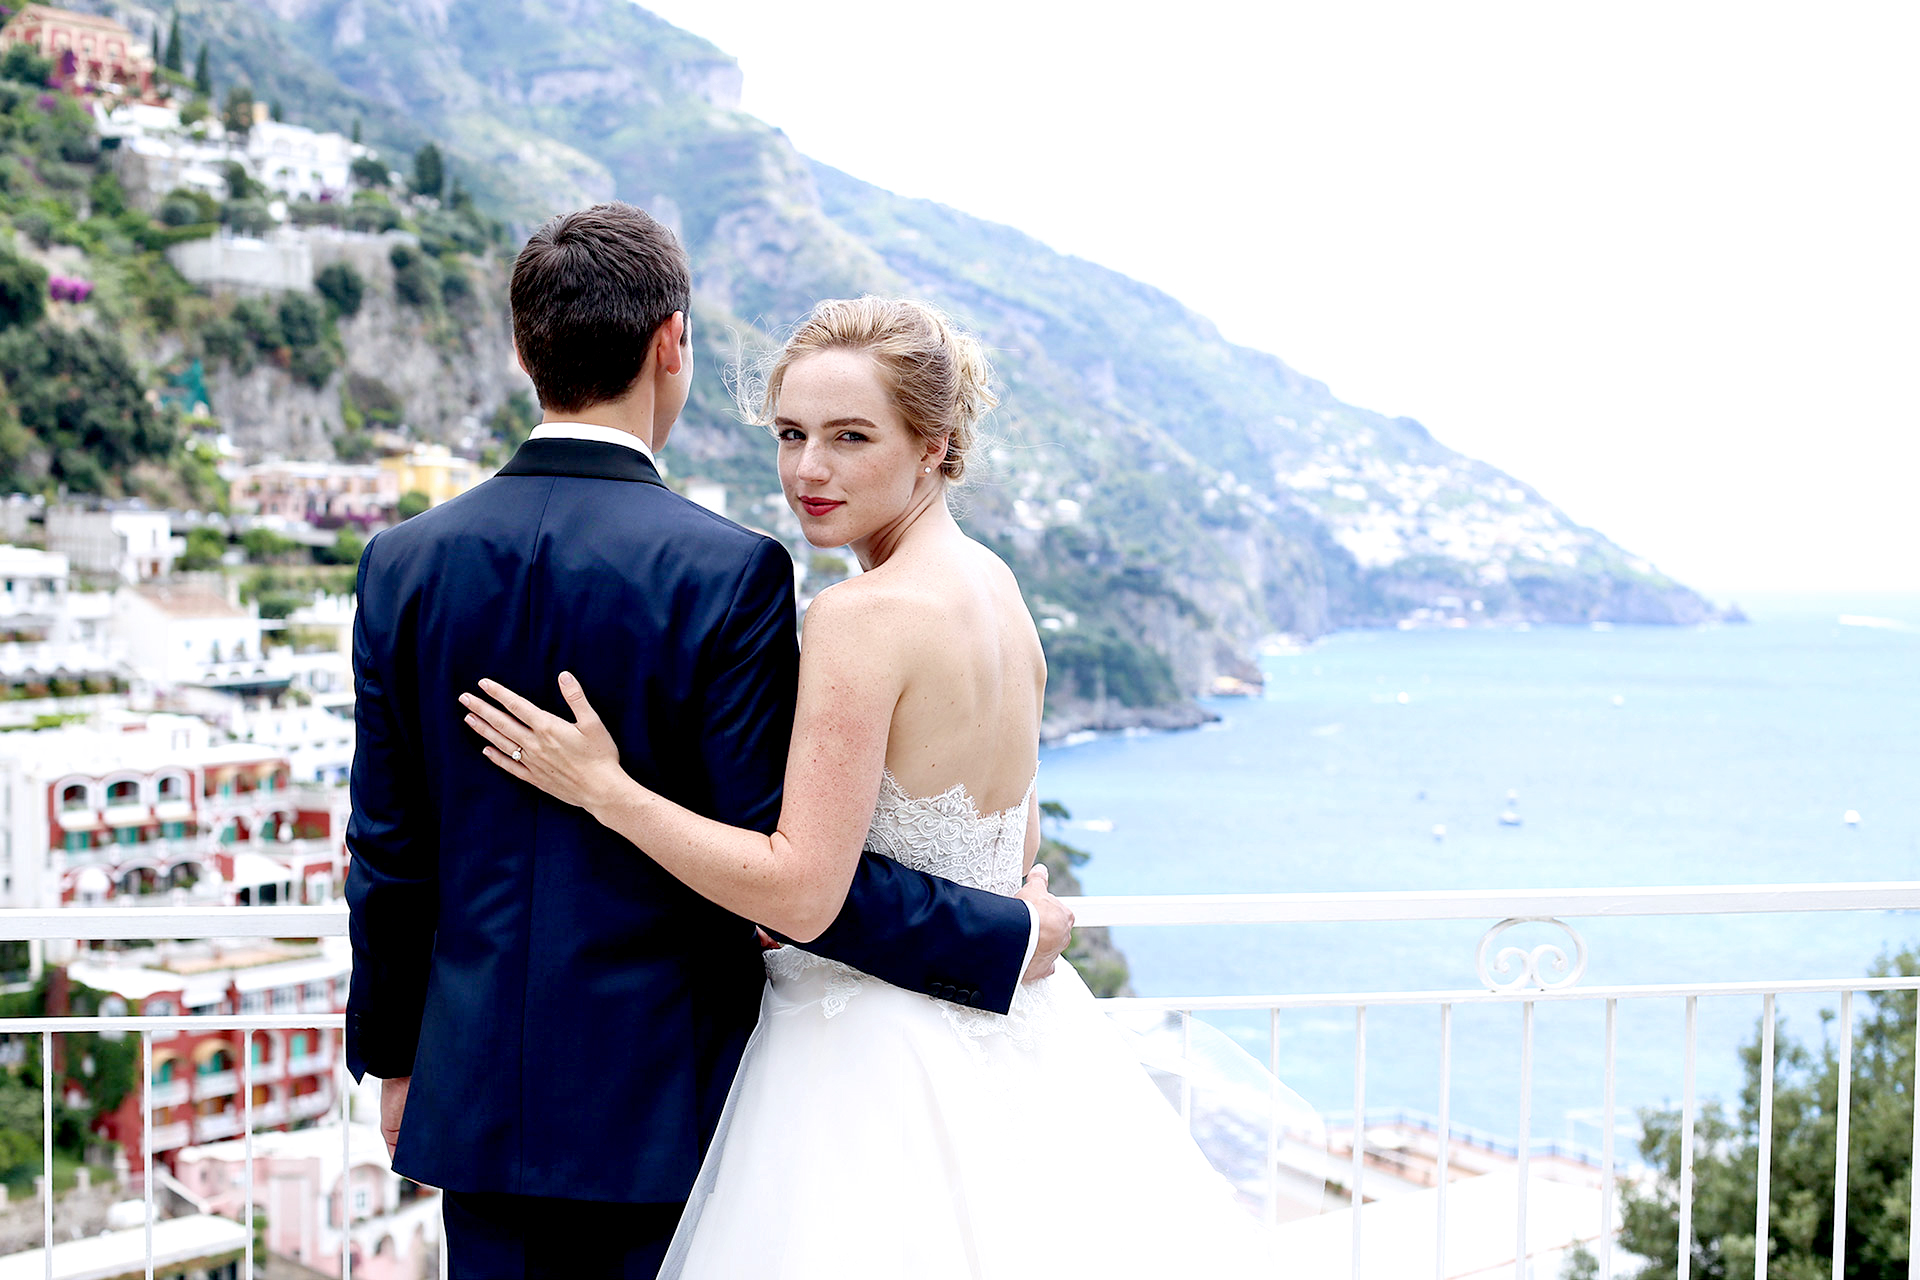 Luxury Destination Wedding Photographer Amalfi Coast Catholic Wedding Positano Shooting Reception La Tagliata Monte Pertuso View Claudia Francese Photography Sisters